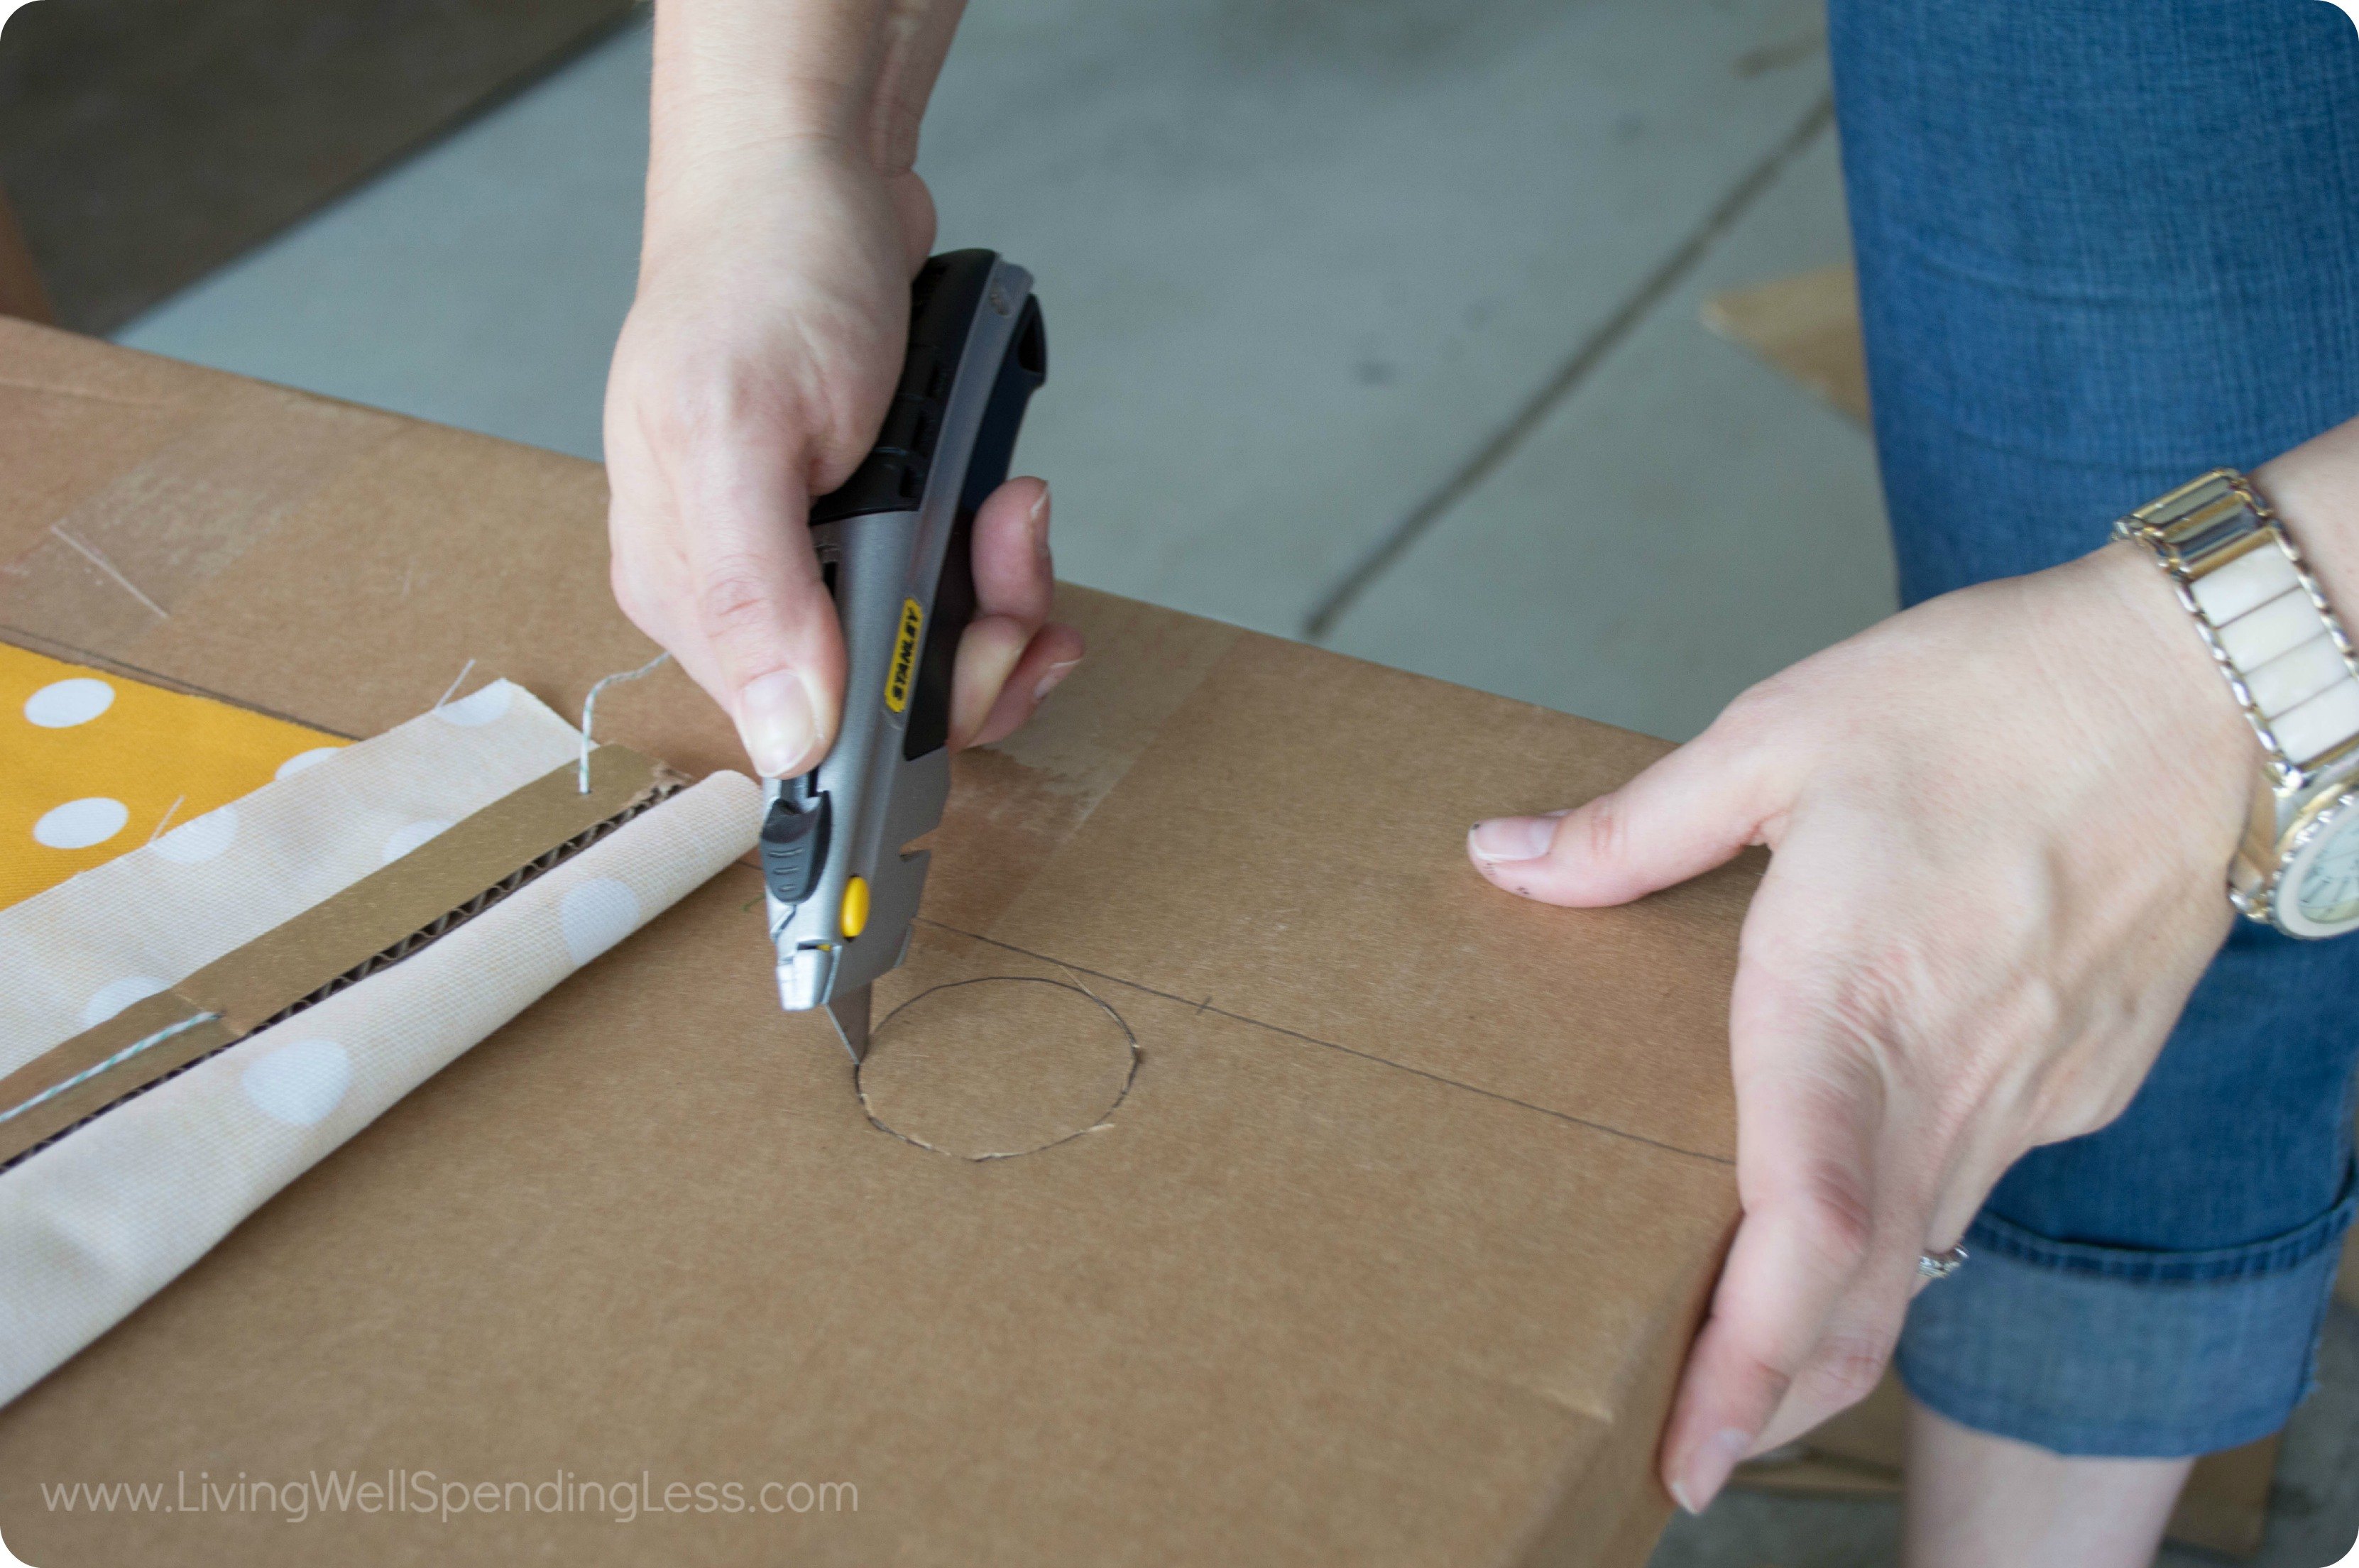 Carefully cut circles in the cardboard counter